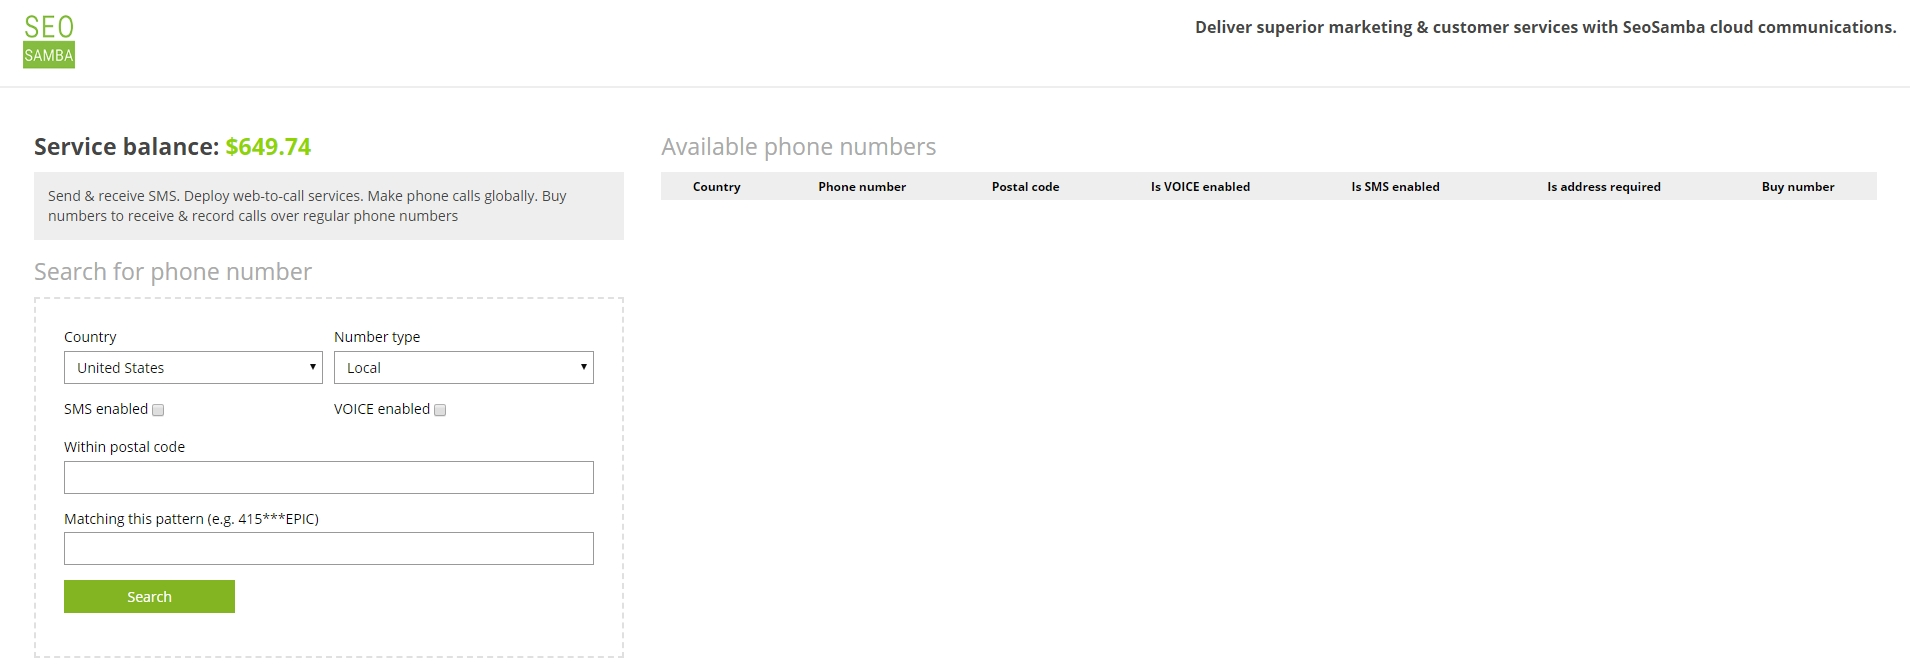 search for a phone number with desired options